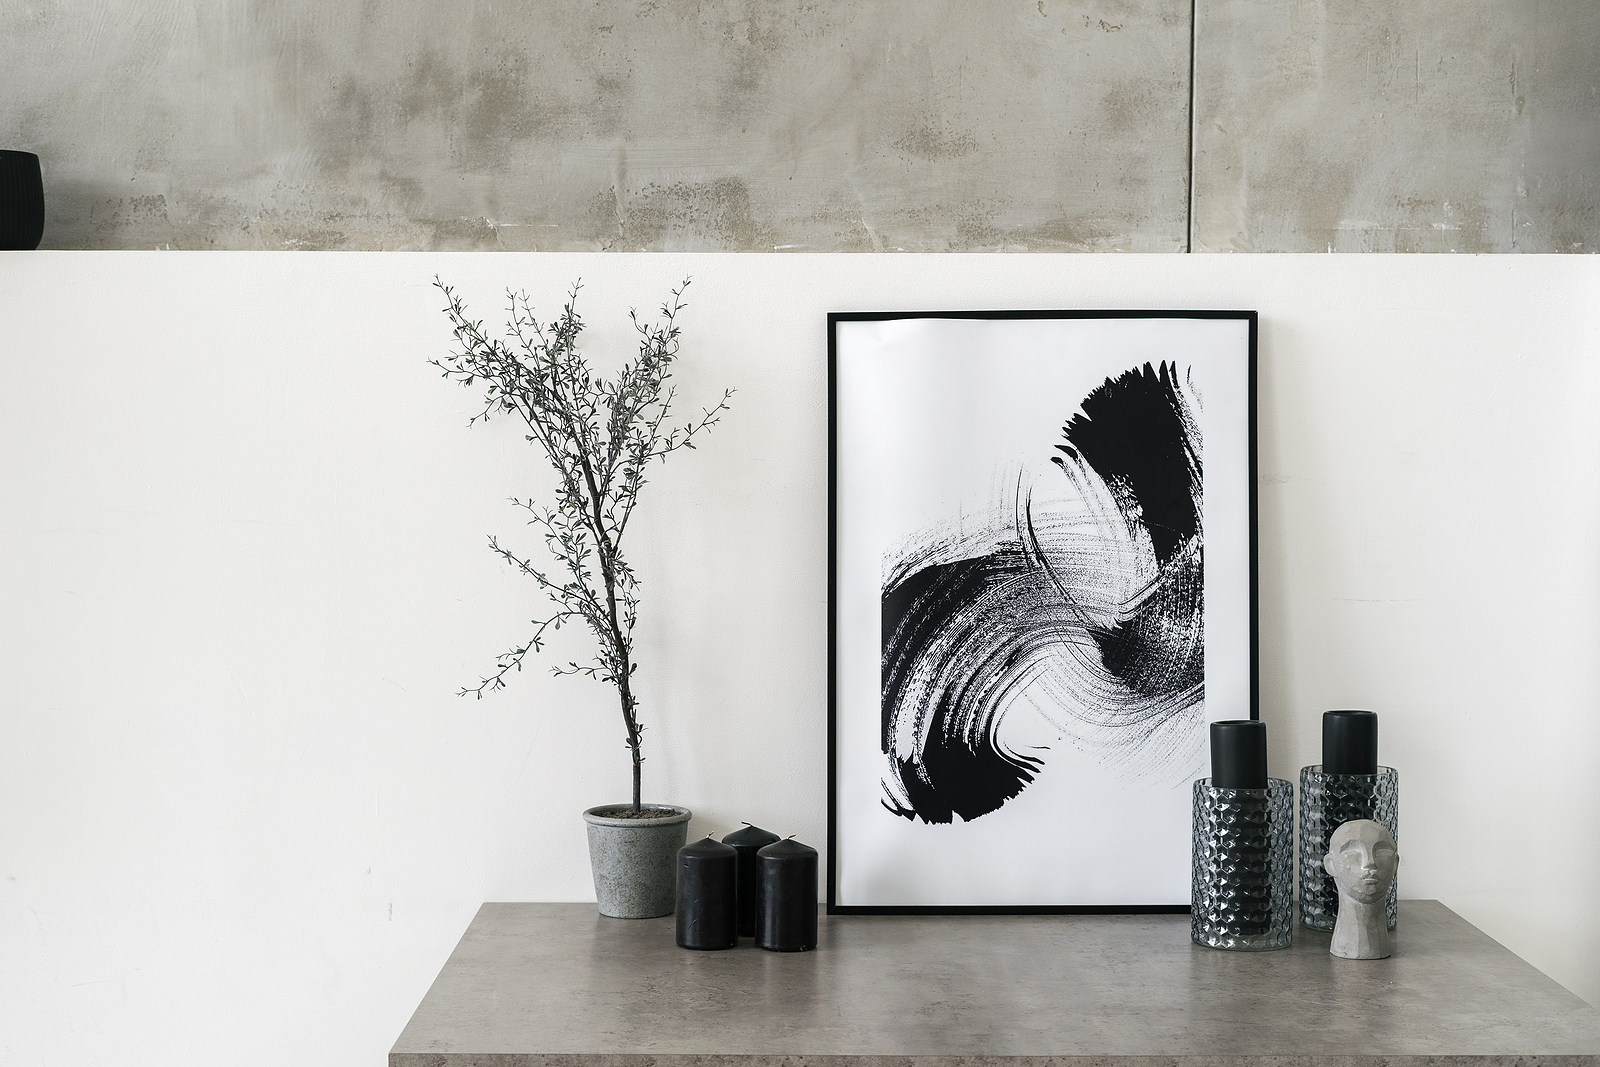 How to Ship Artwork Framed with Glass